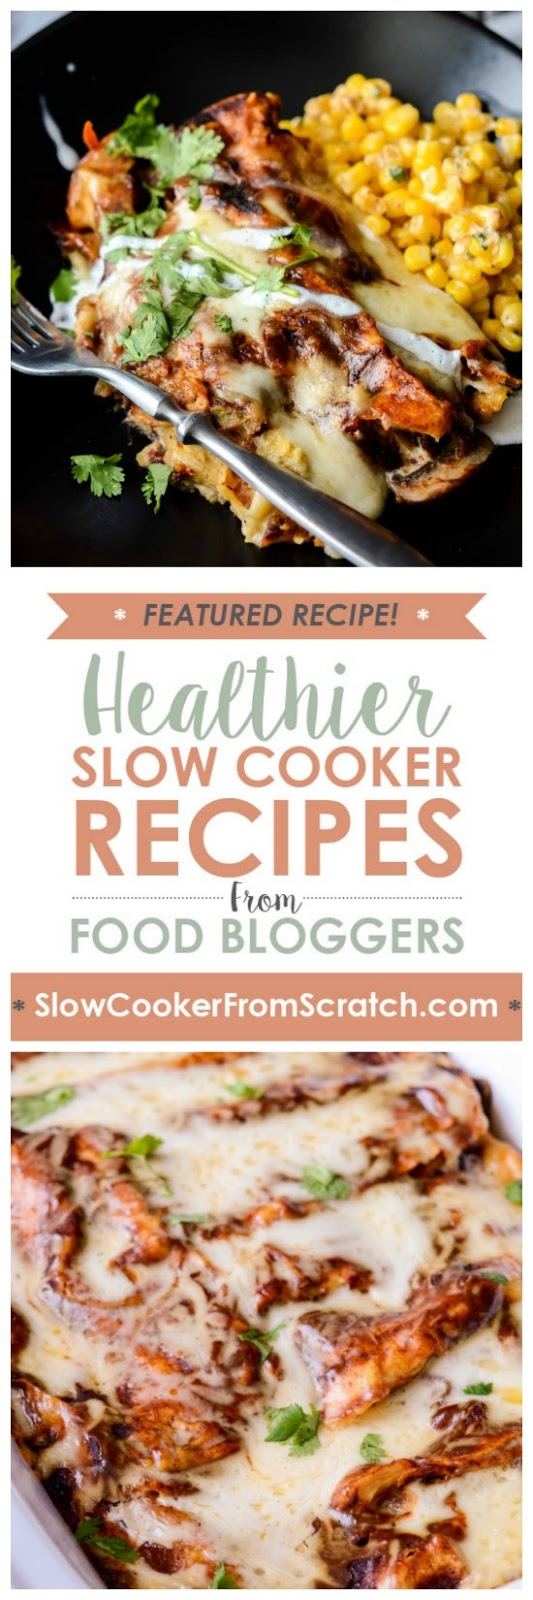 Slow Cooker Spinach and Mushroom Enchiladas from Slow Cooker Gourmet featured on SlowCookerFromScratch.com